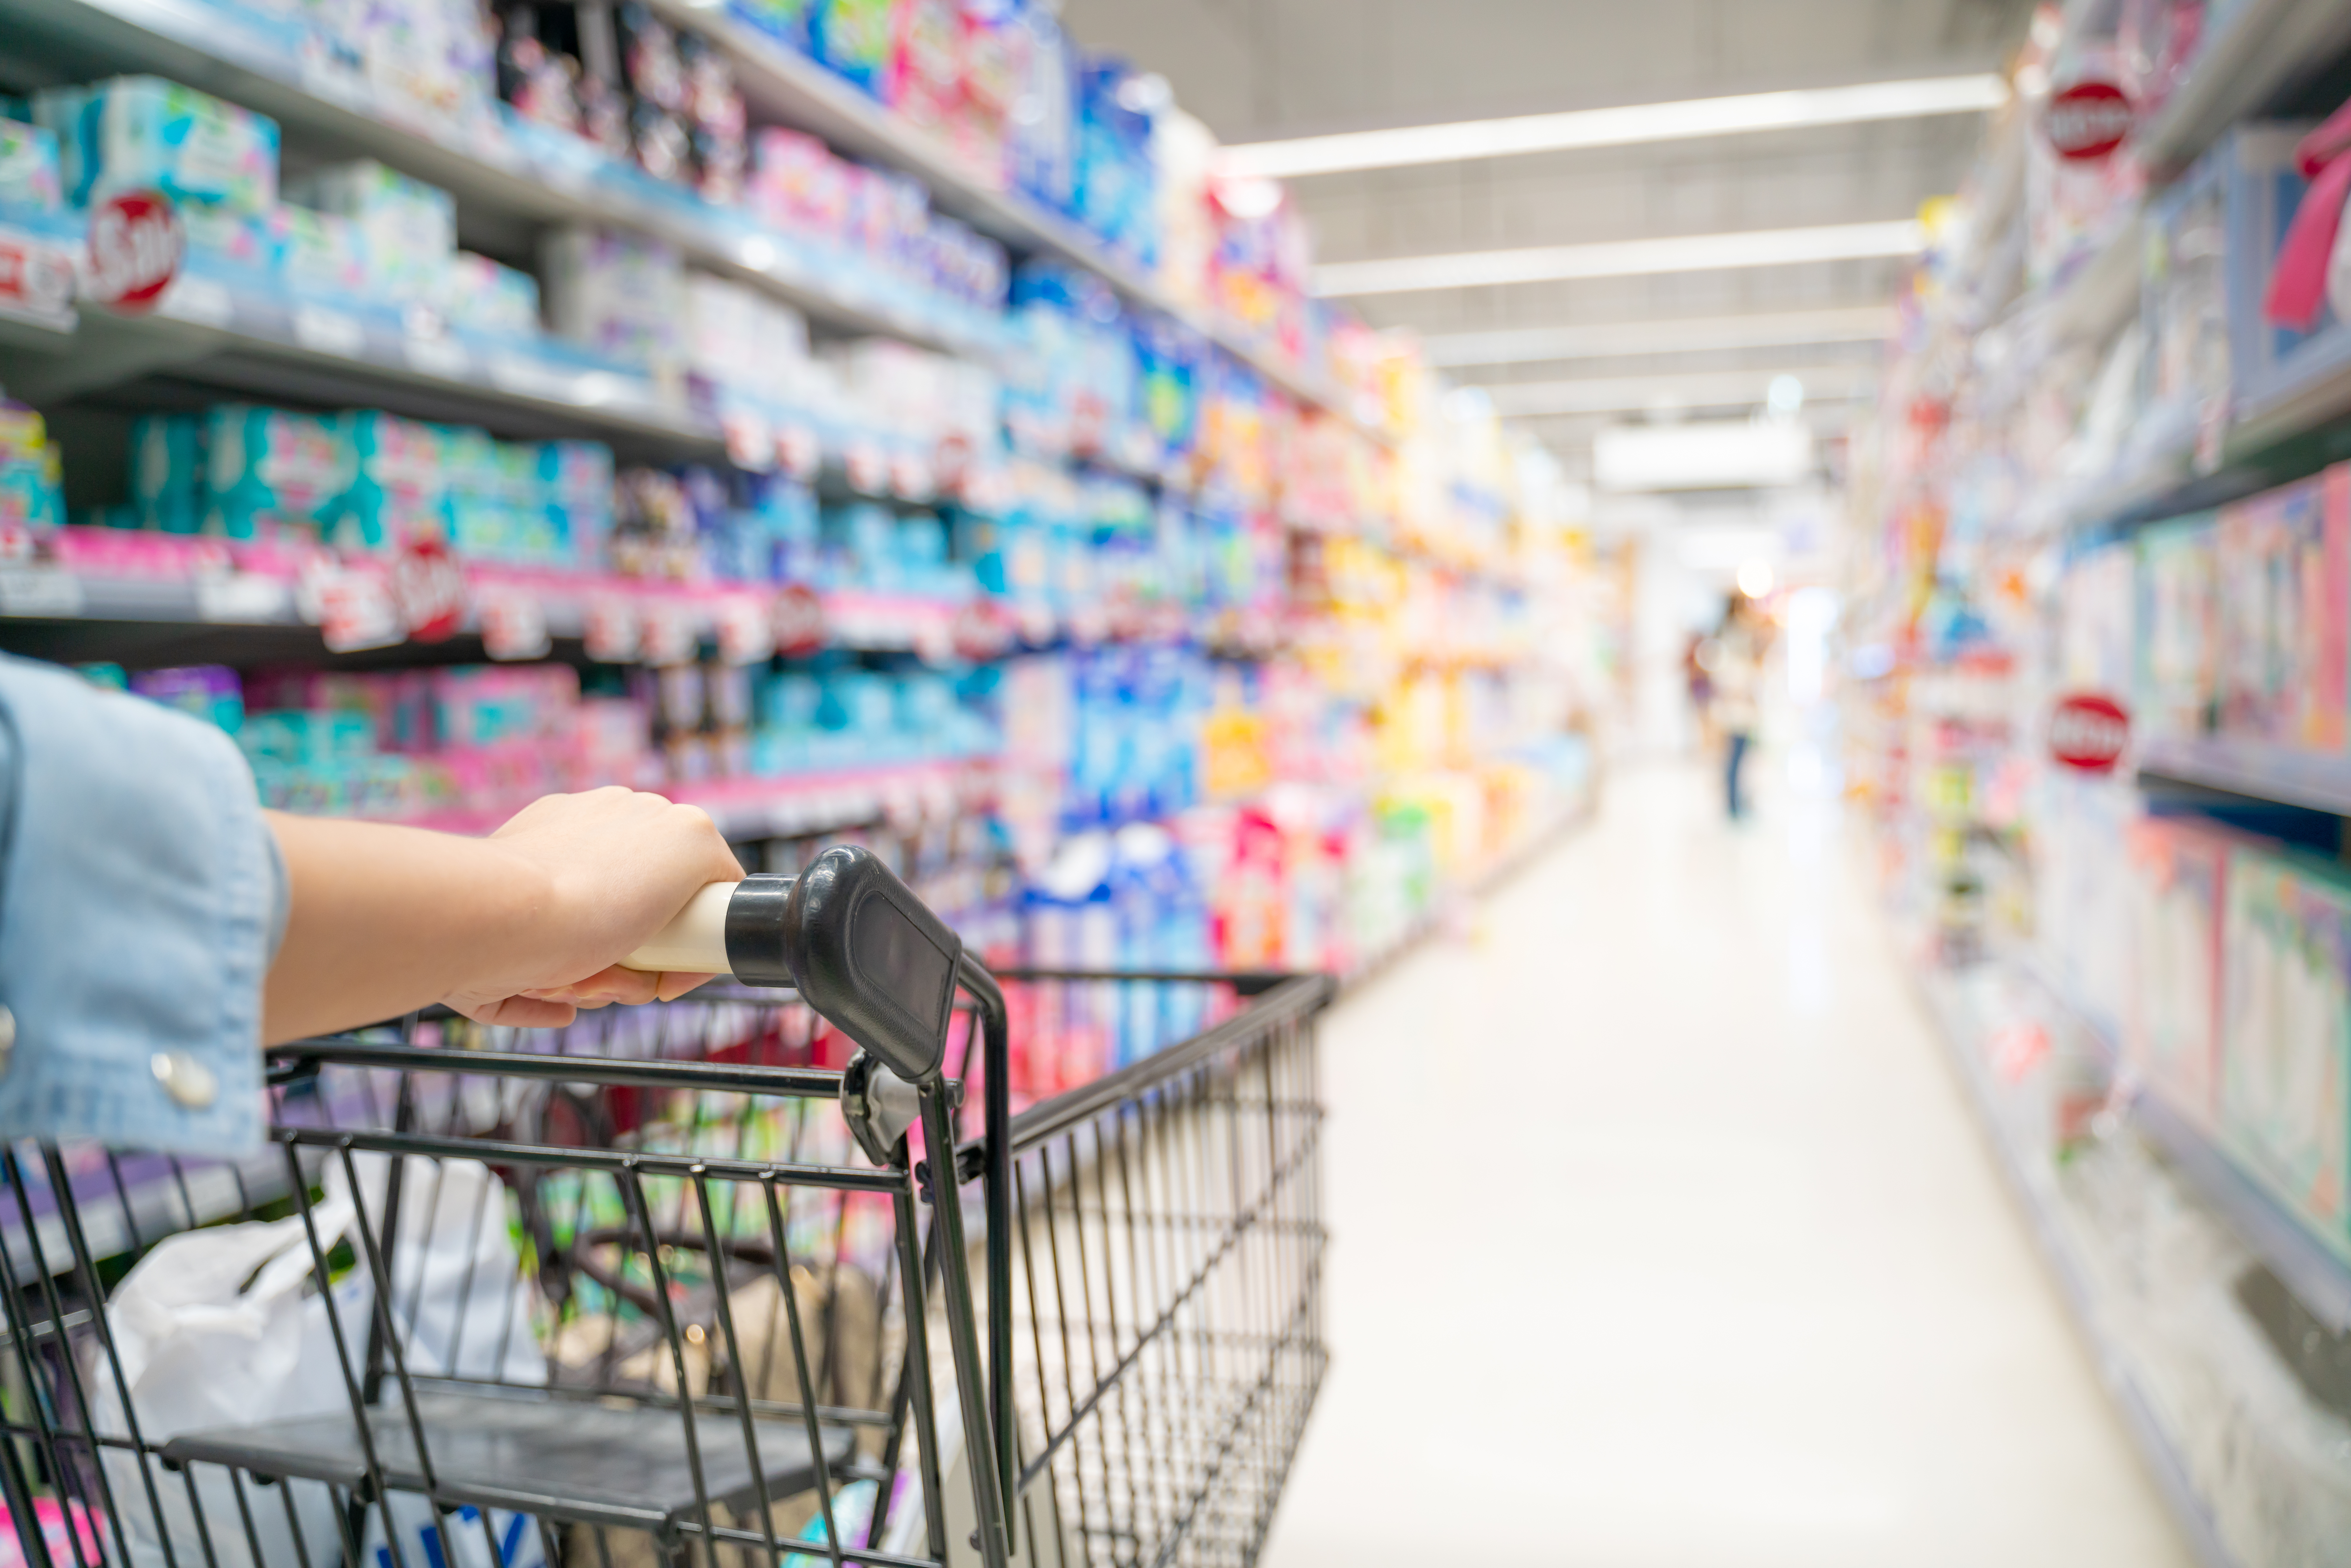 Retail Firm Leverages API Strategy to Unlock the Power of Customer Data to Modernize Fulfillment, Spur Growth and Increase Agility